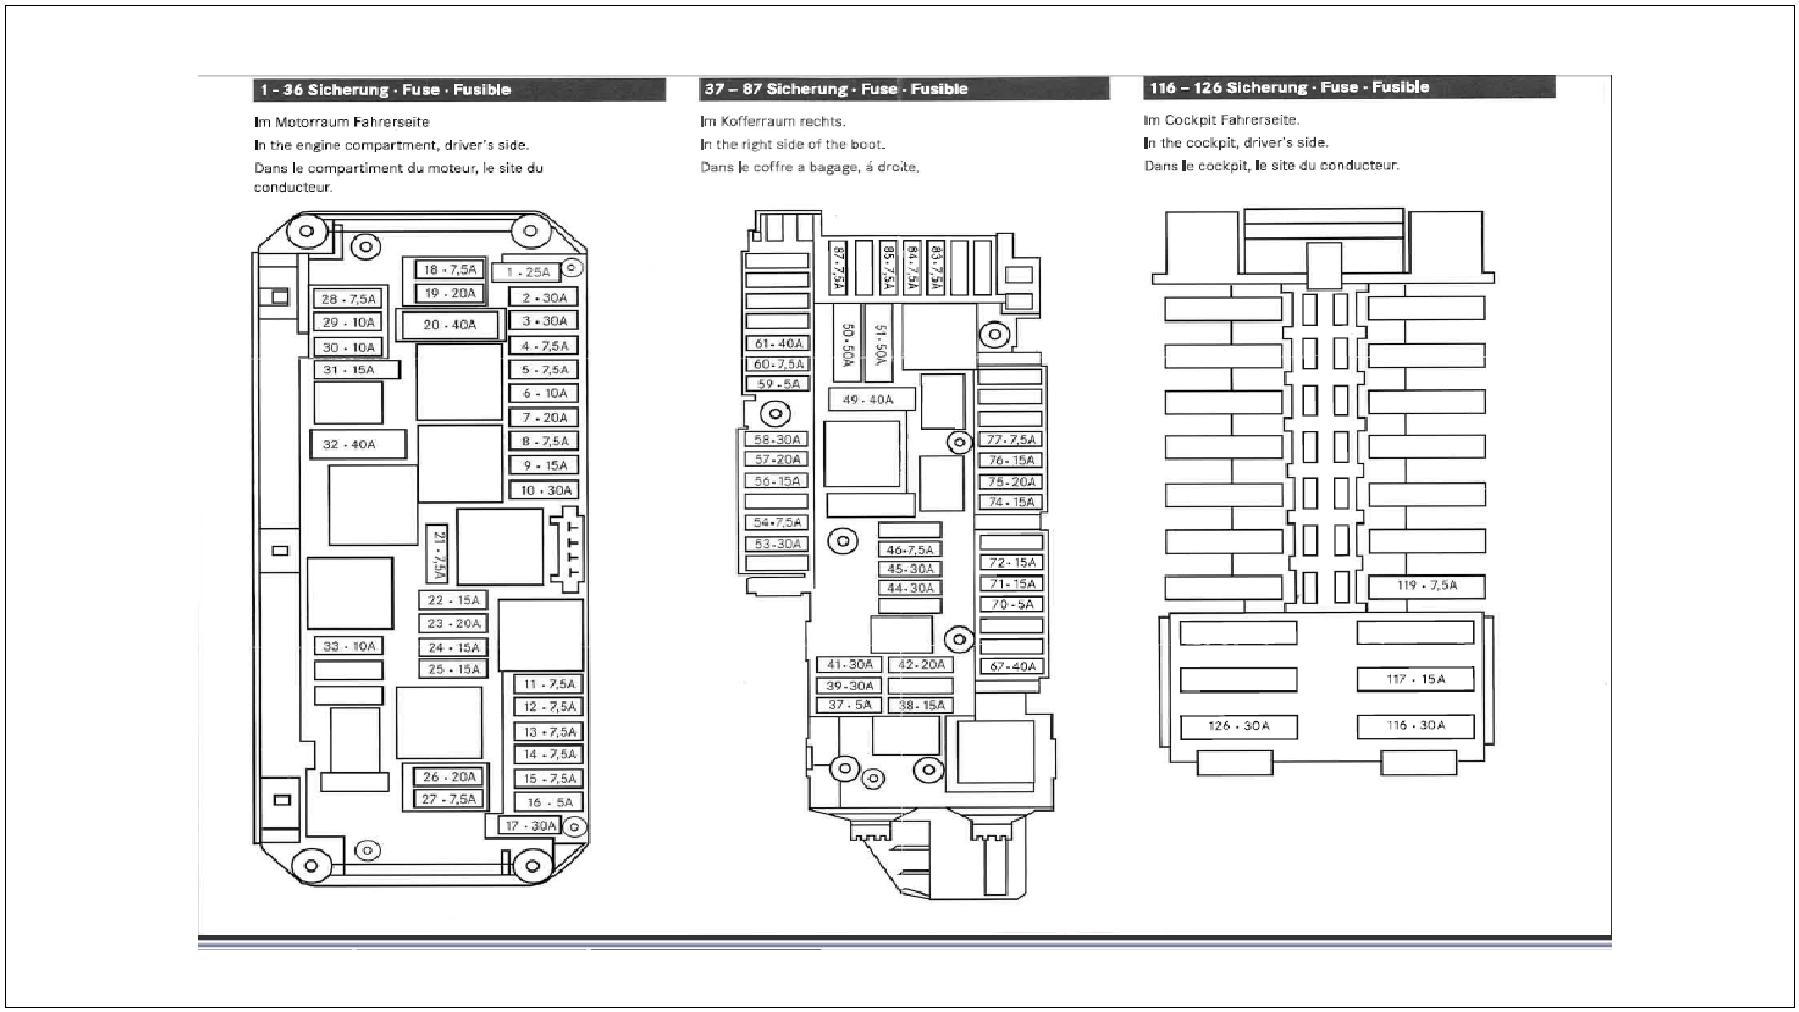 Mercedes Benz C320 Fuse Boxes Location Wiring Library 2004 525i Box 2009 C300 Diagram About